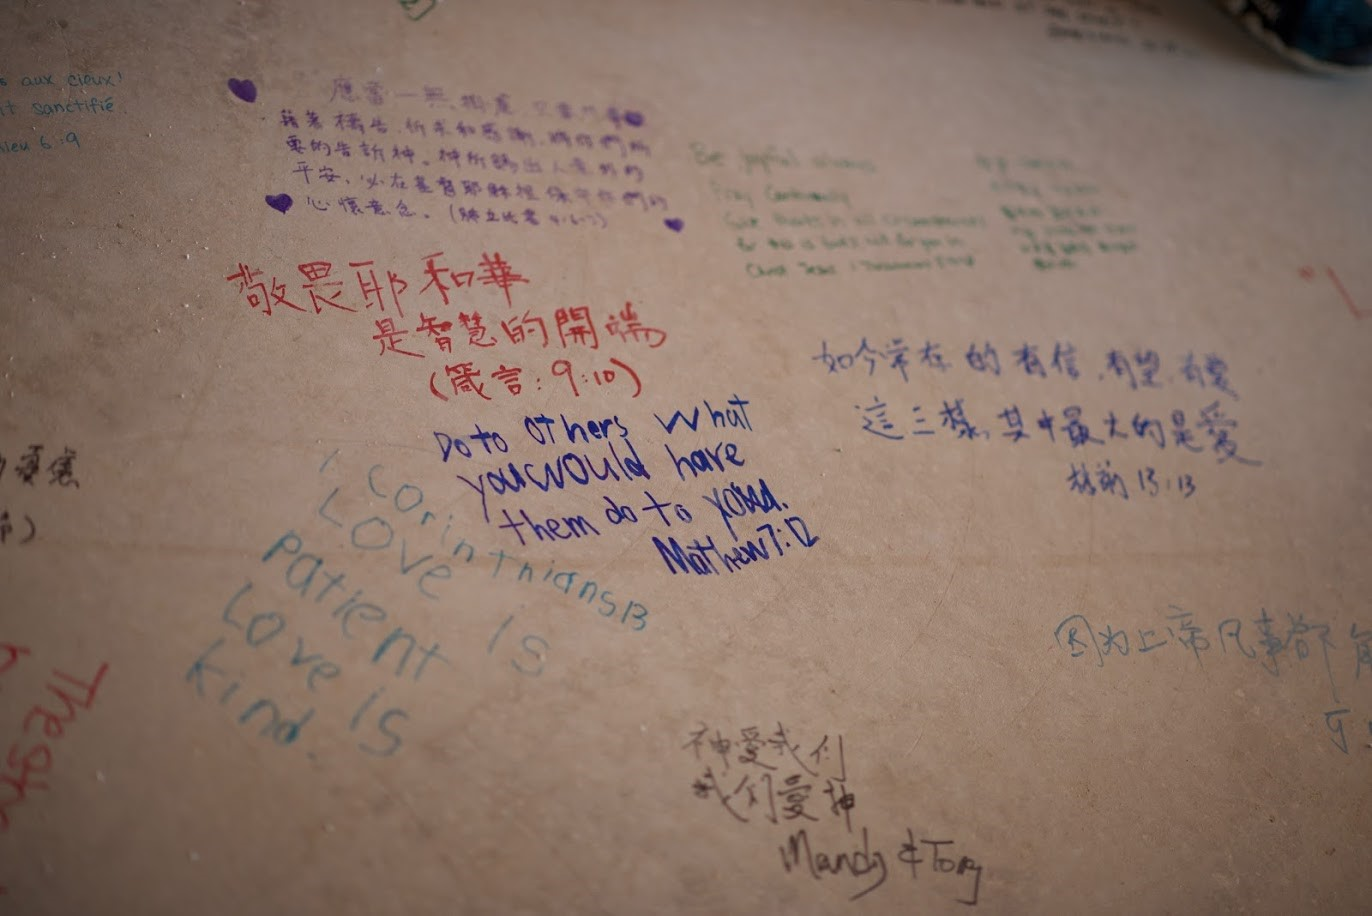 Bible verses written by St. E parishioners on the floor of the main sanctuary during construction